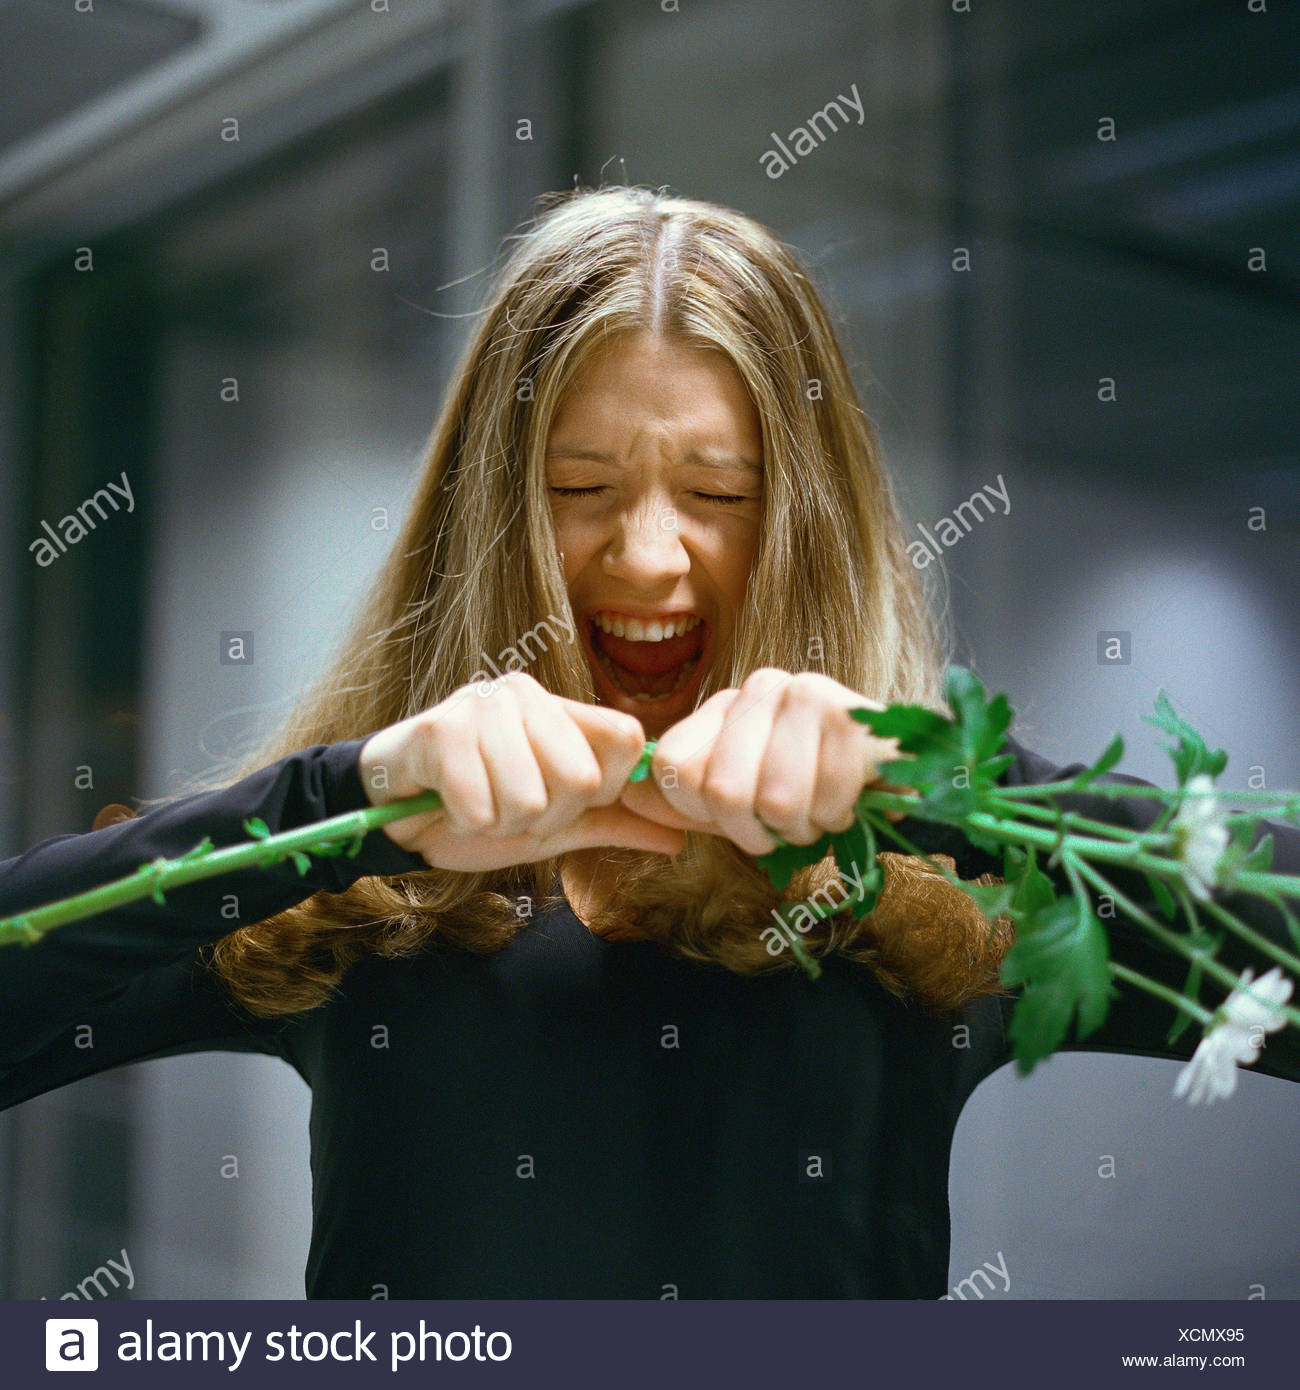 Woman holding out flowers, screaming - Stock Image